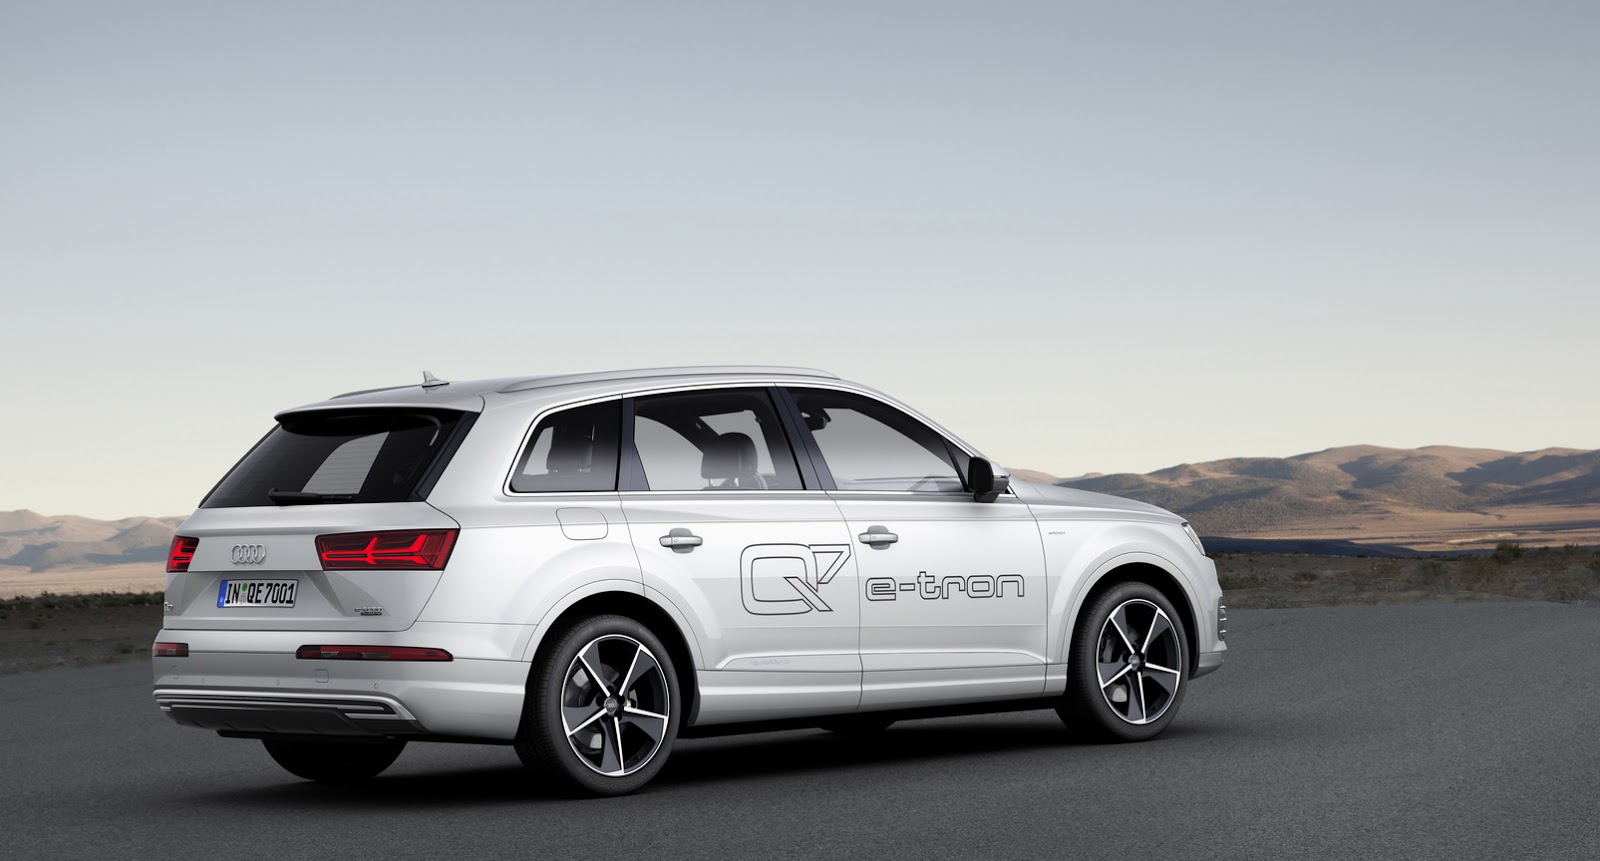 audi launches q7 e tron 3 0 tdi quattro full specs and pricing announced autoevolution. Black Bedroom Furniture Sets. Home Design Ideas